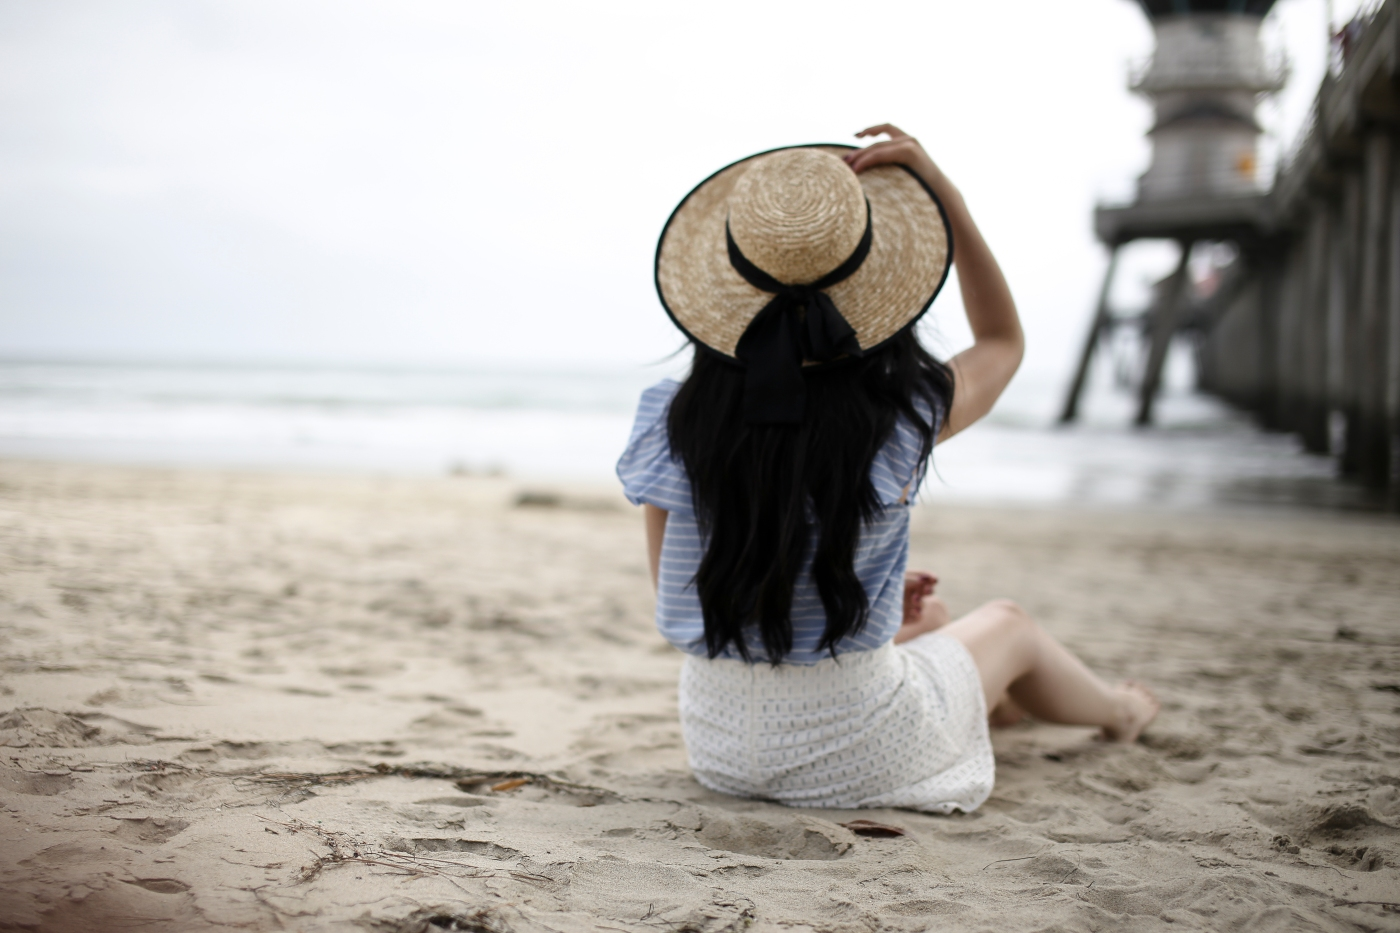 fashion blogger in southern California, walking on a beach barefoot, wearing a Who What Wear blouse, Fashion Bunker White eyelet shorts, and a boater hat. She is wearing Chloe glasses, and mac lipstick